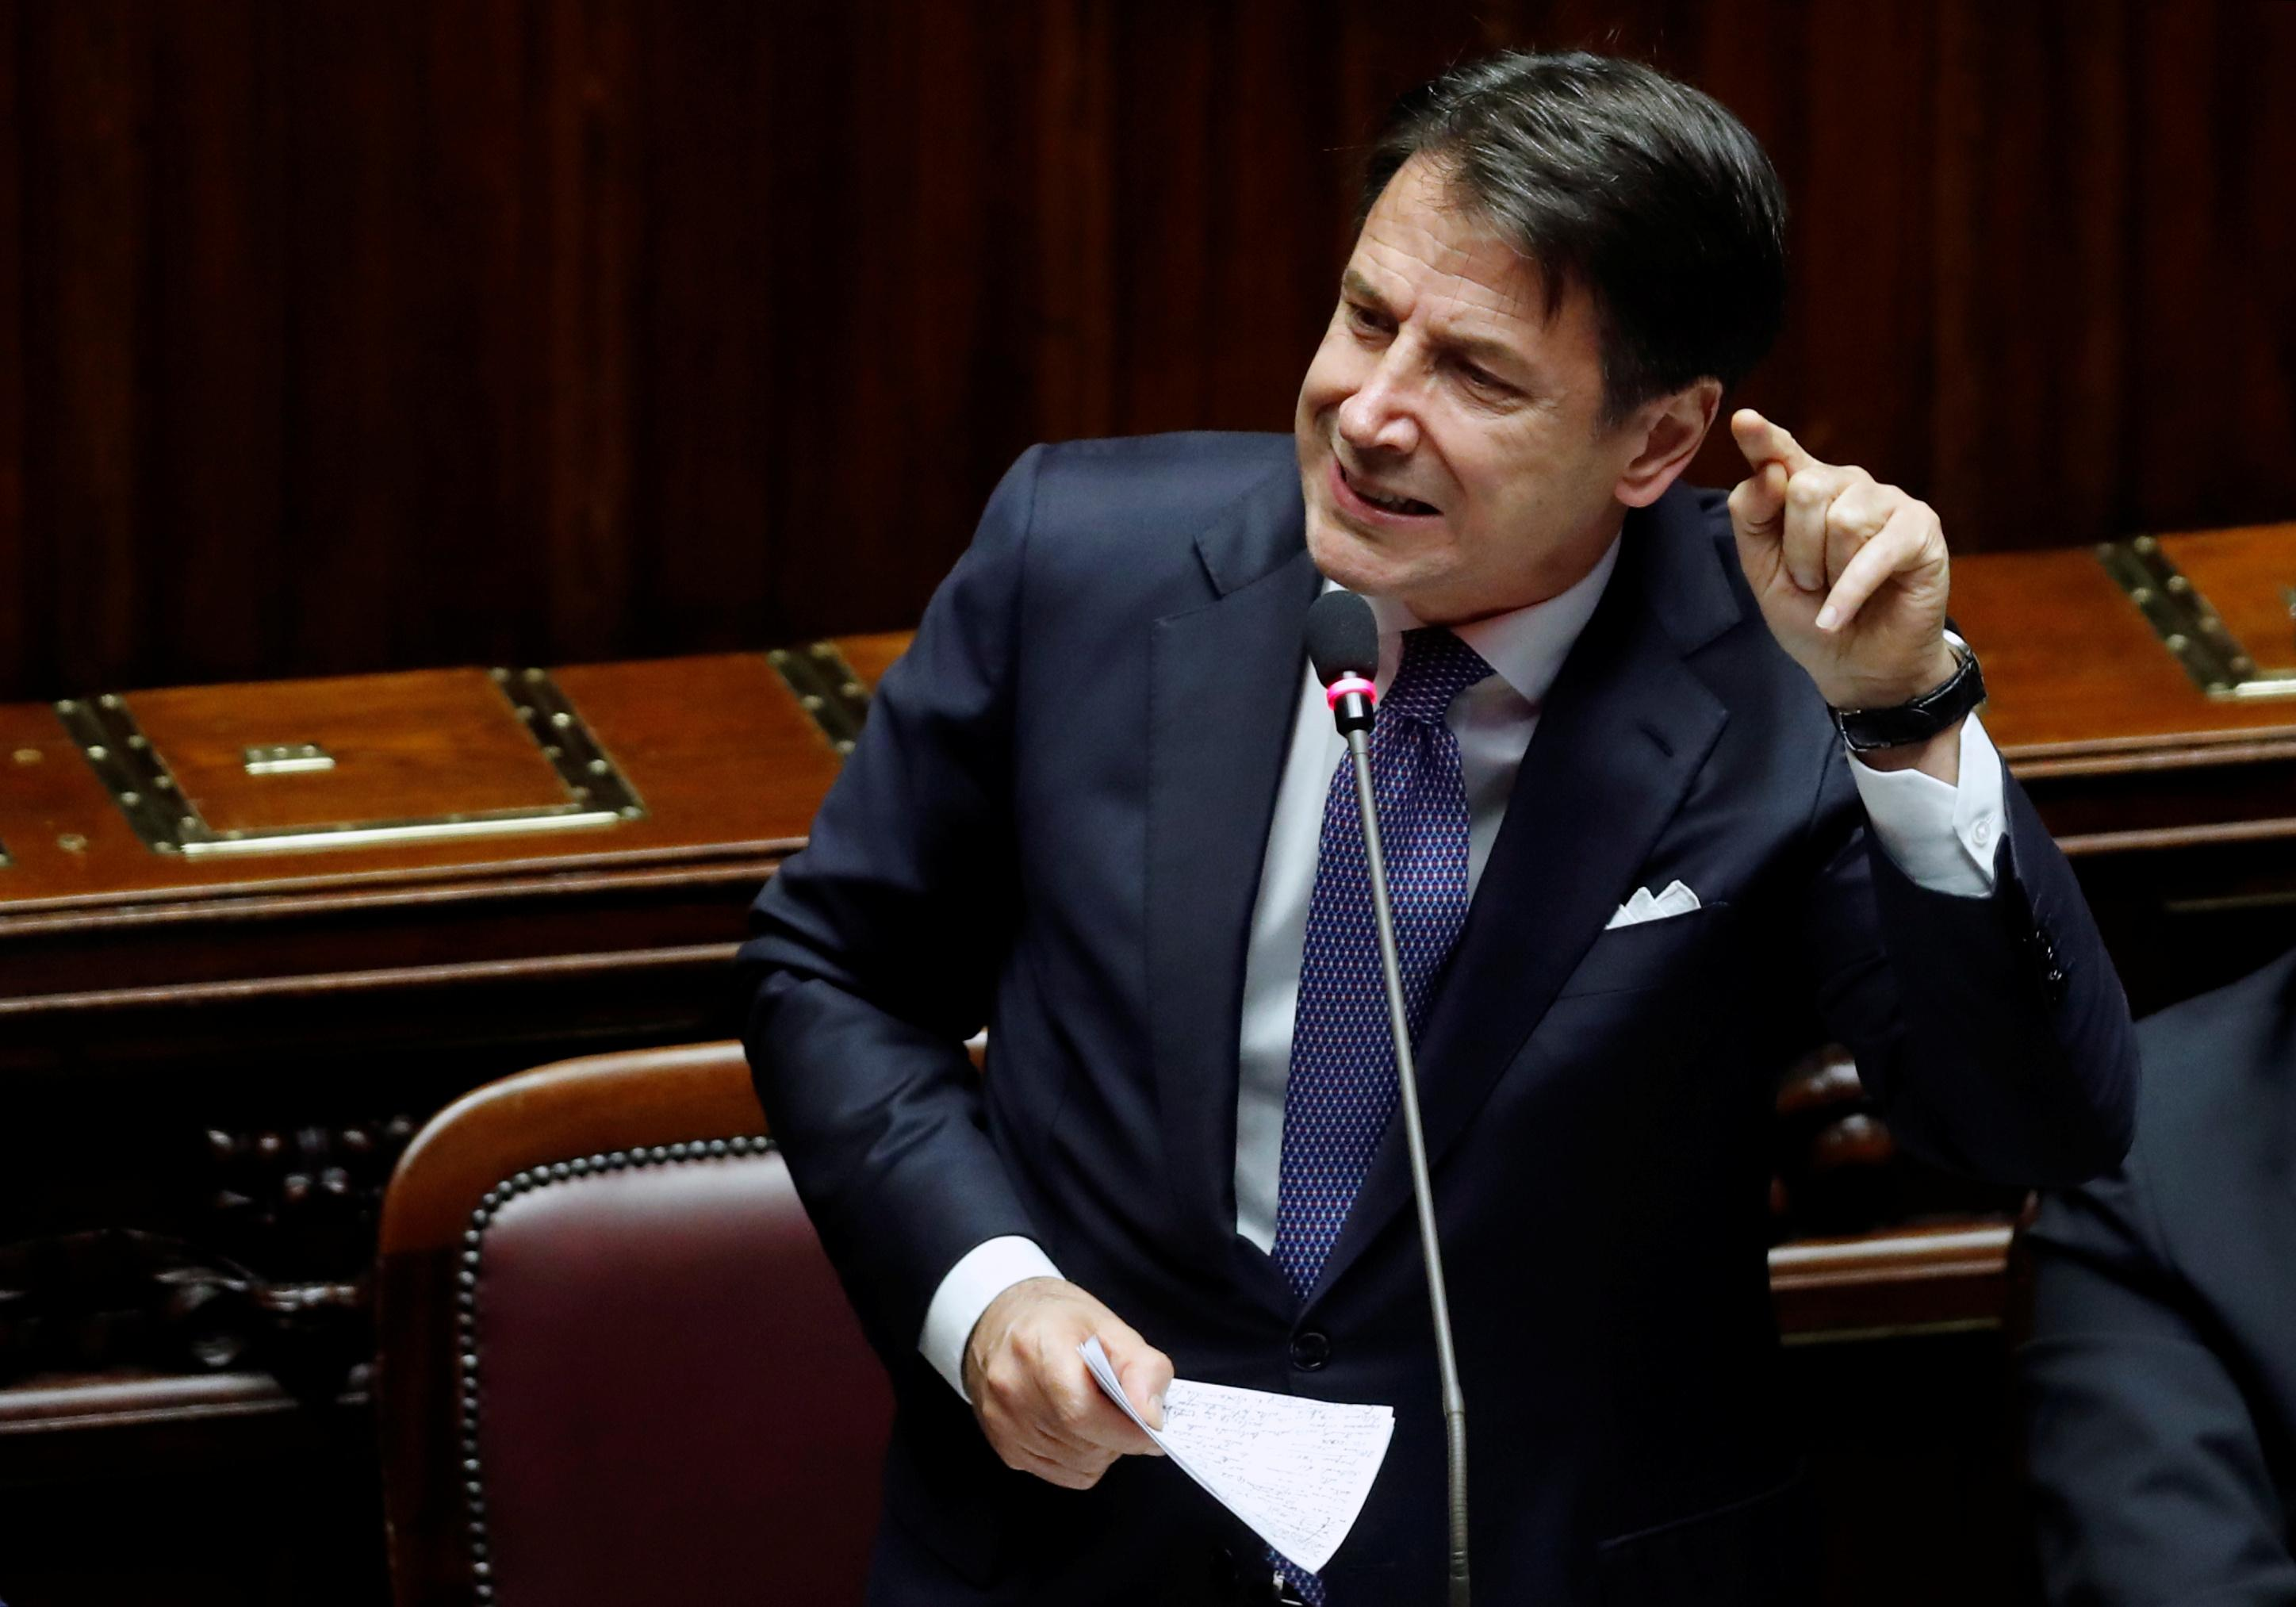 Italy wants reform of EU stability pact - PM Conte